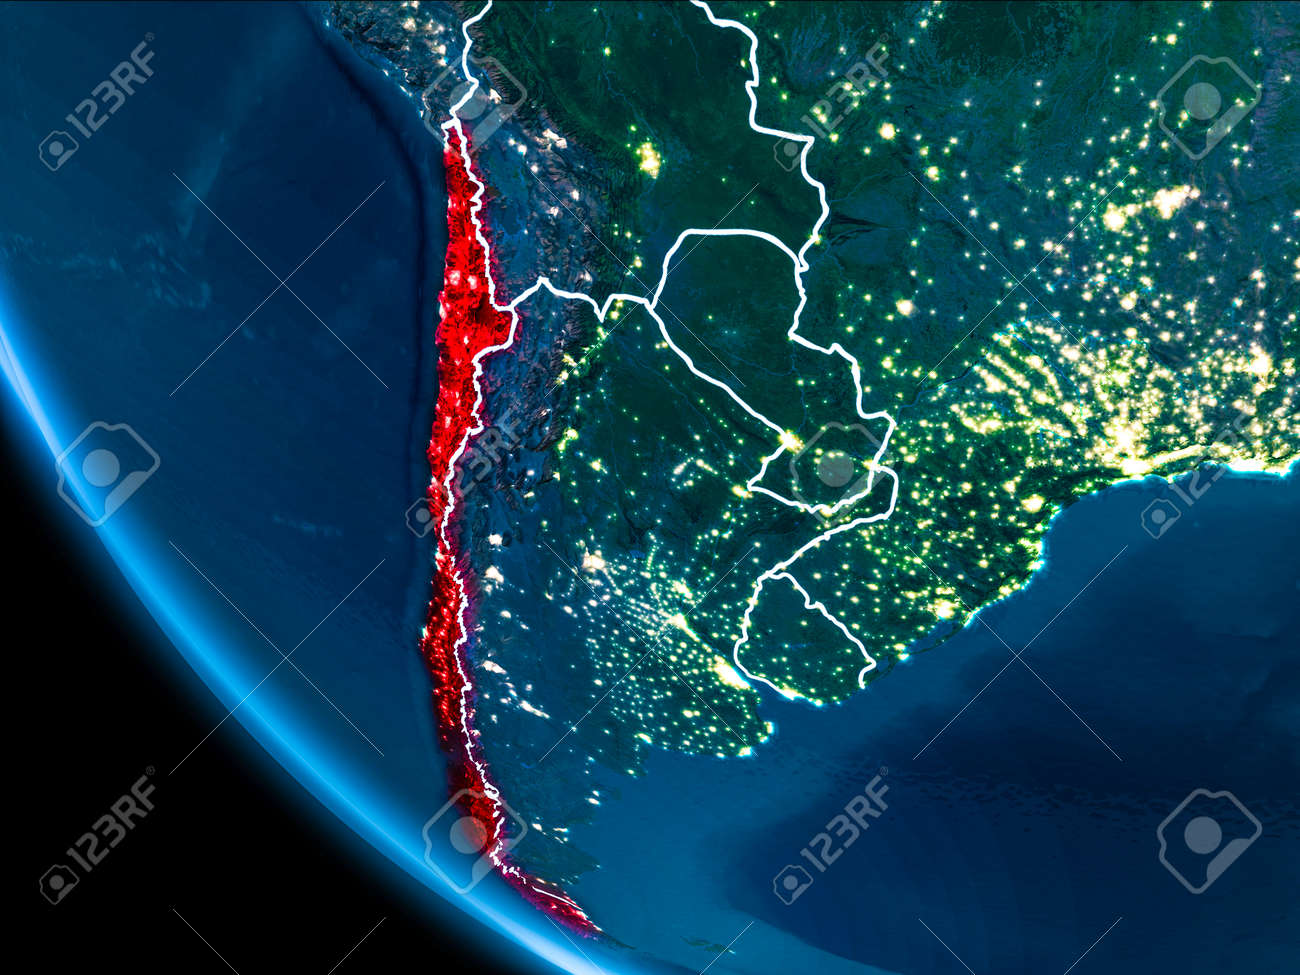 Map of chile in red as seen from space on planet earth at night illustration map of chile in red as seen from space on planet earth at night with white borderlines and city lights 3d illustration gumiabroncs Images